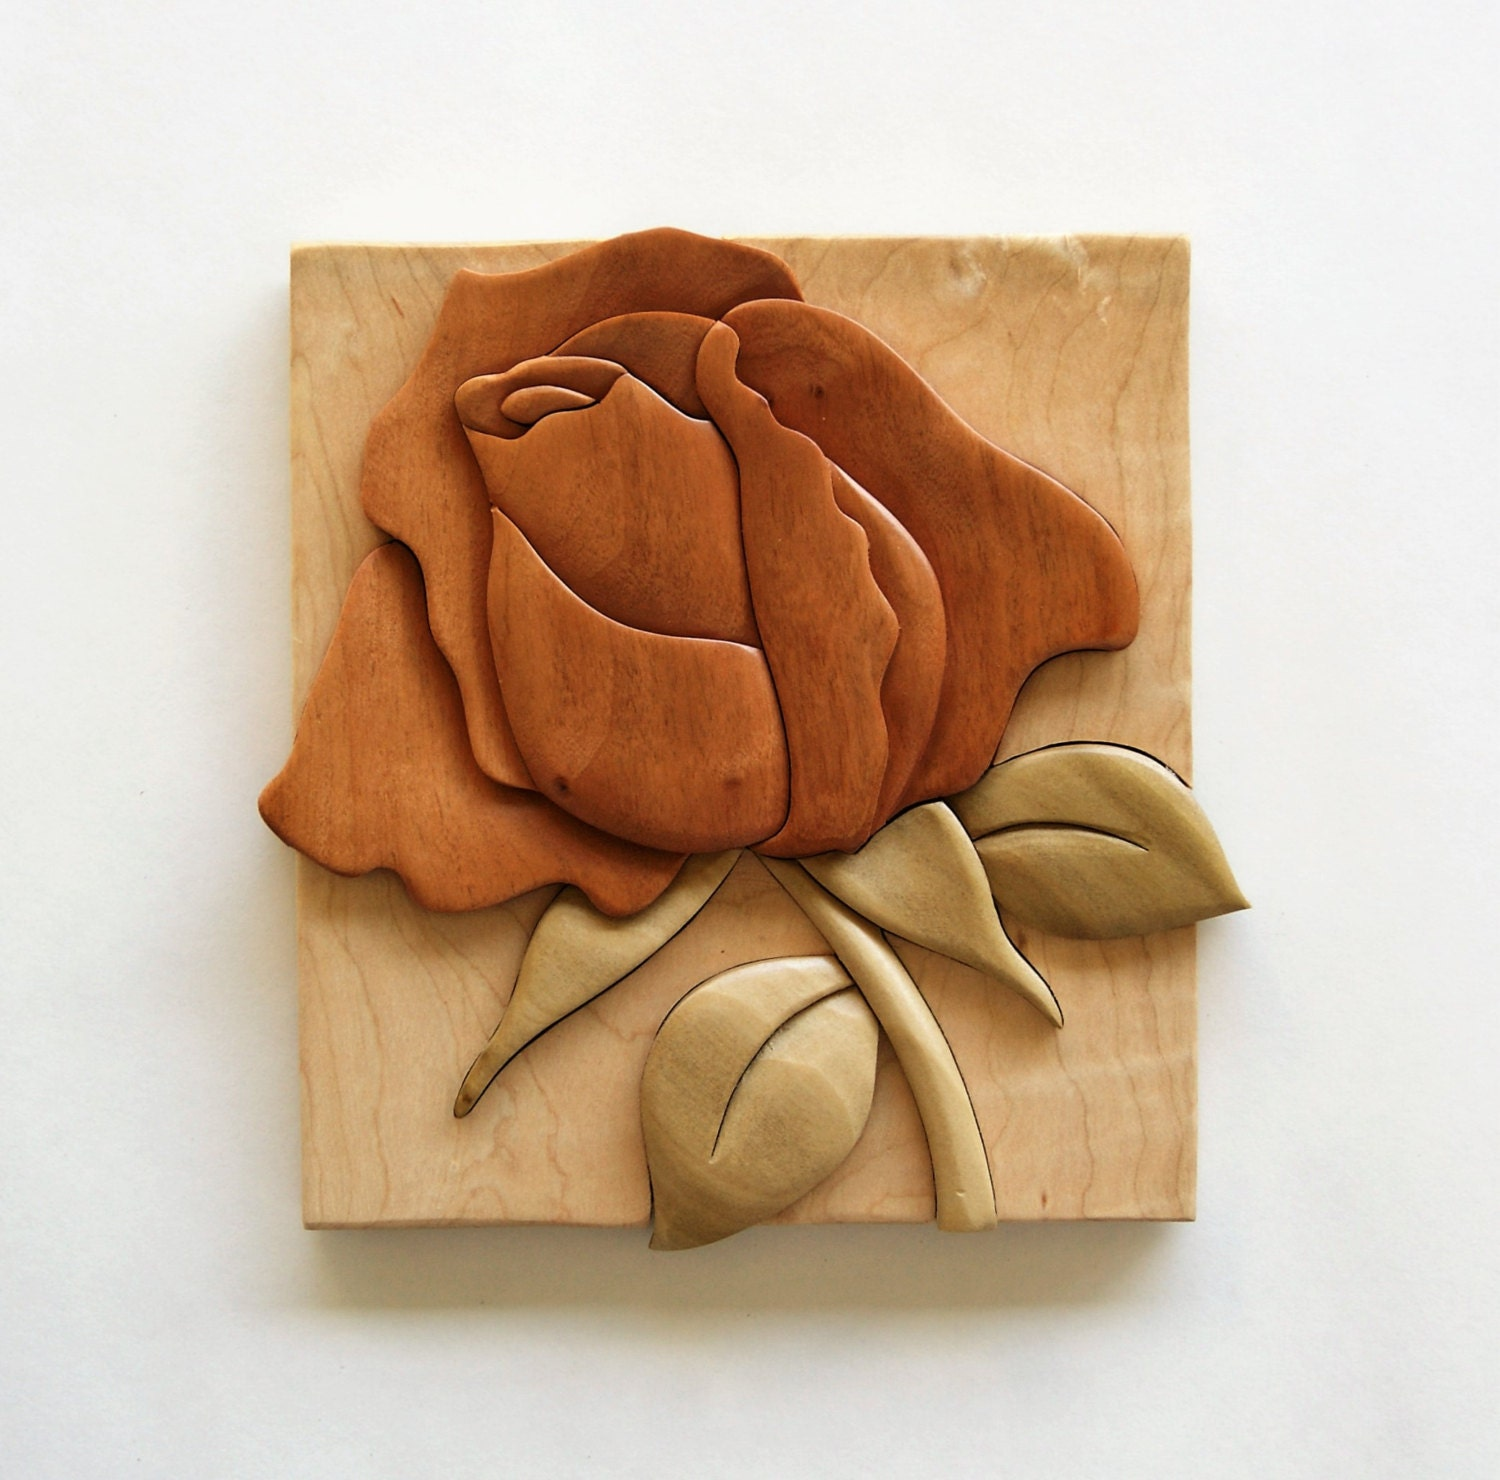 Rose intarsia wall hanging wood flower carving floral decor